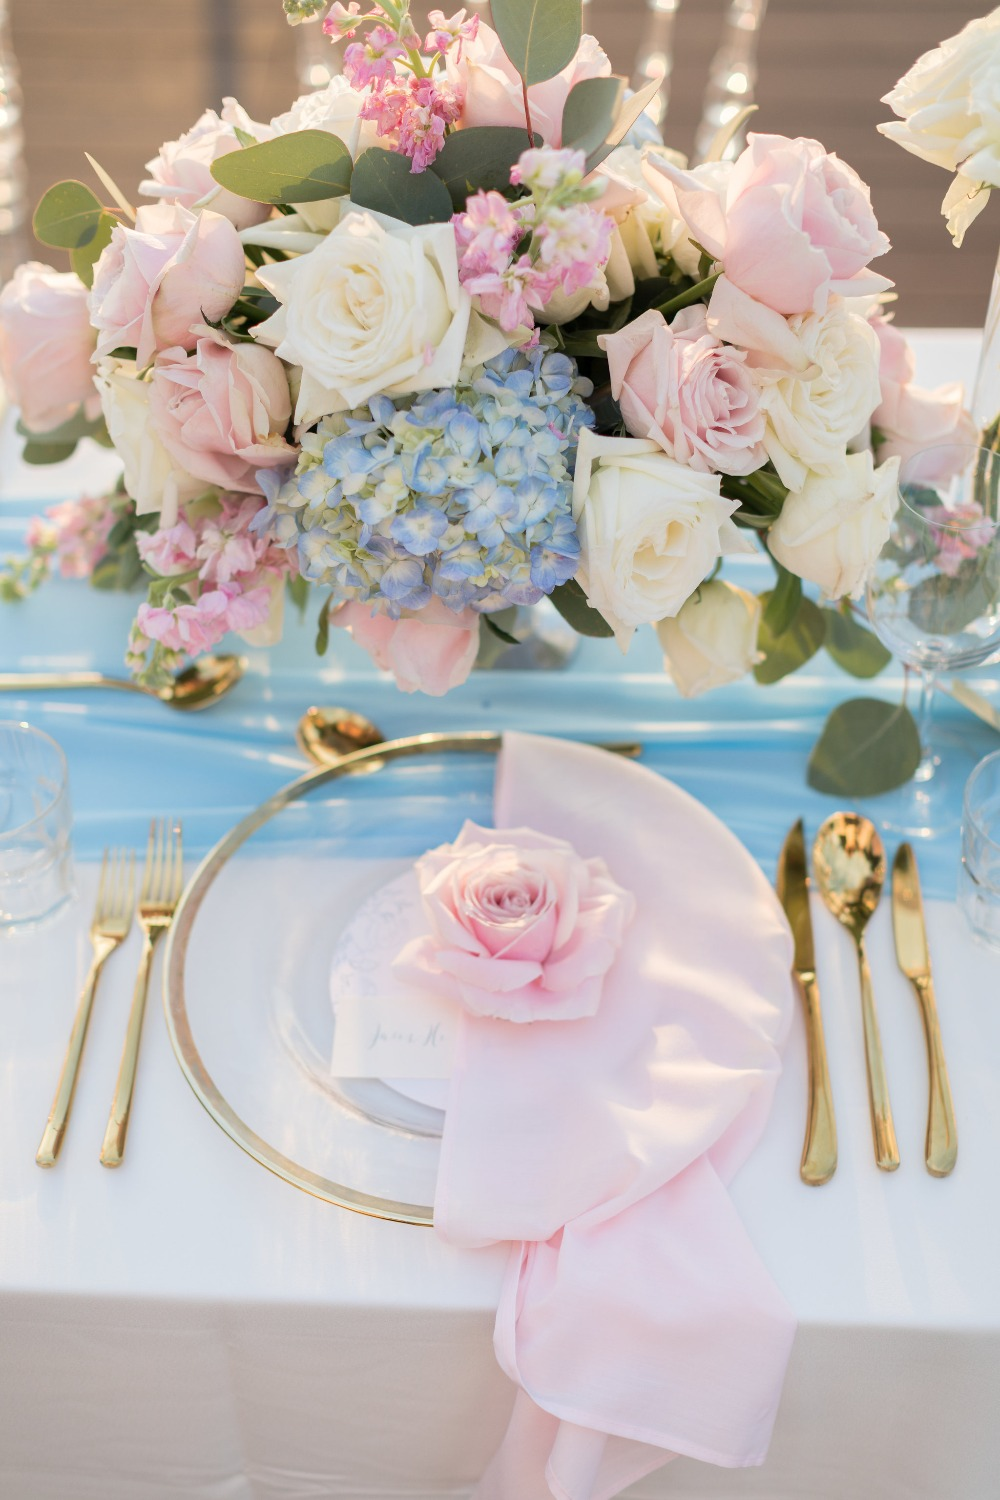 58 69 Glam Pink Blue And Gold Ocean View Wedding In Thailand